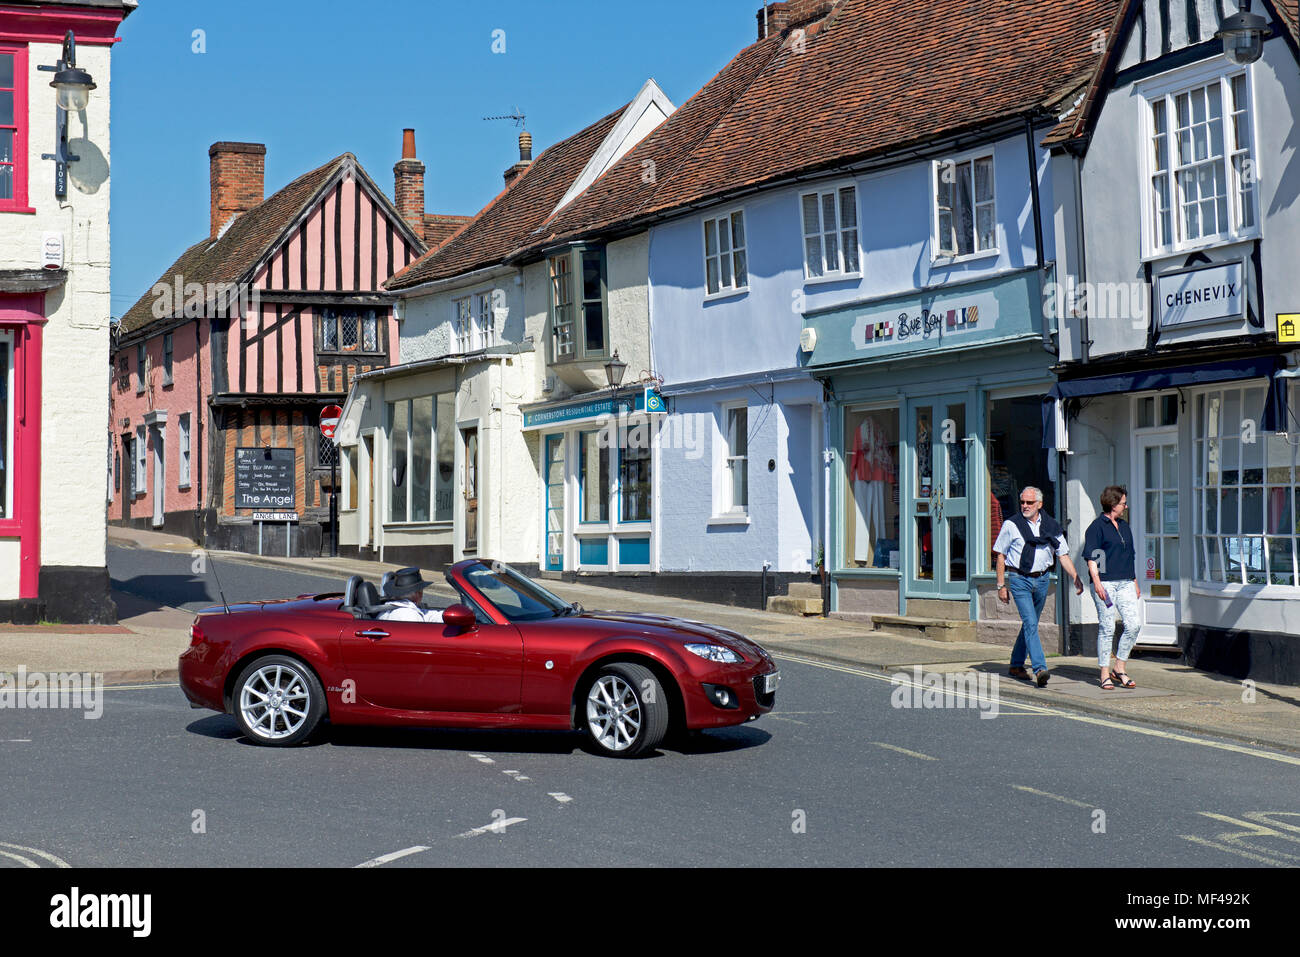 Sport Auto in Woodbridge, Suffolk, England Großbritannien Stockbild